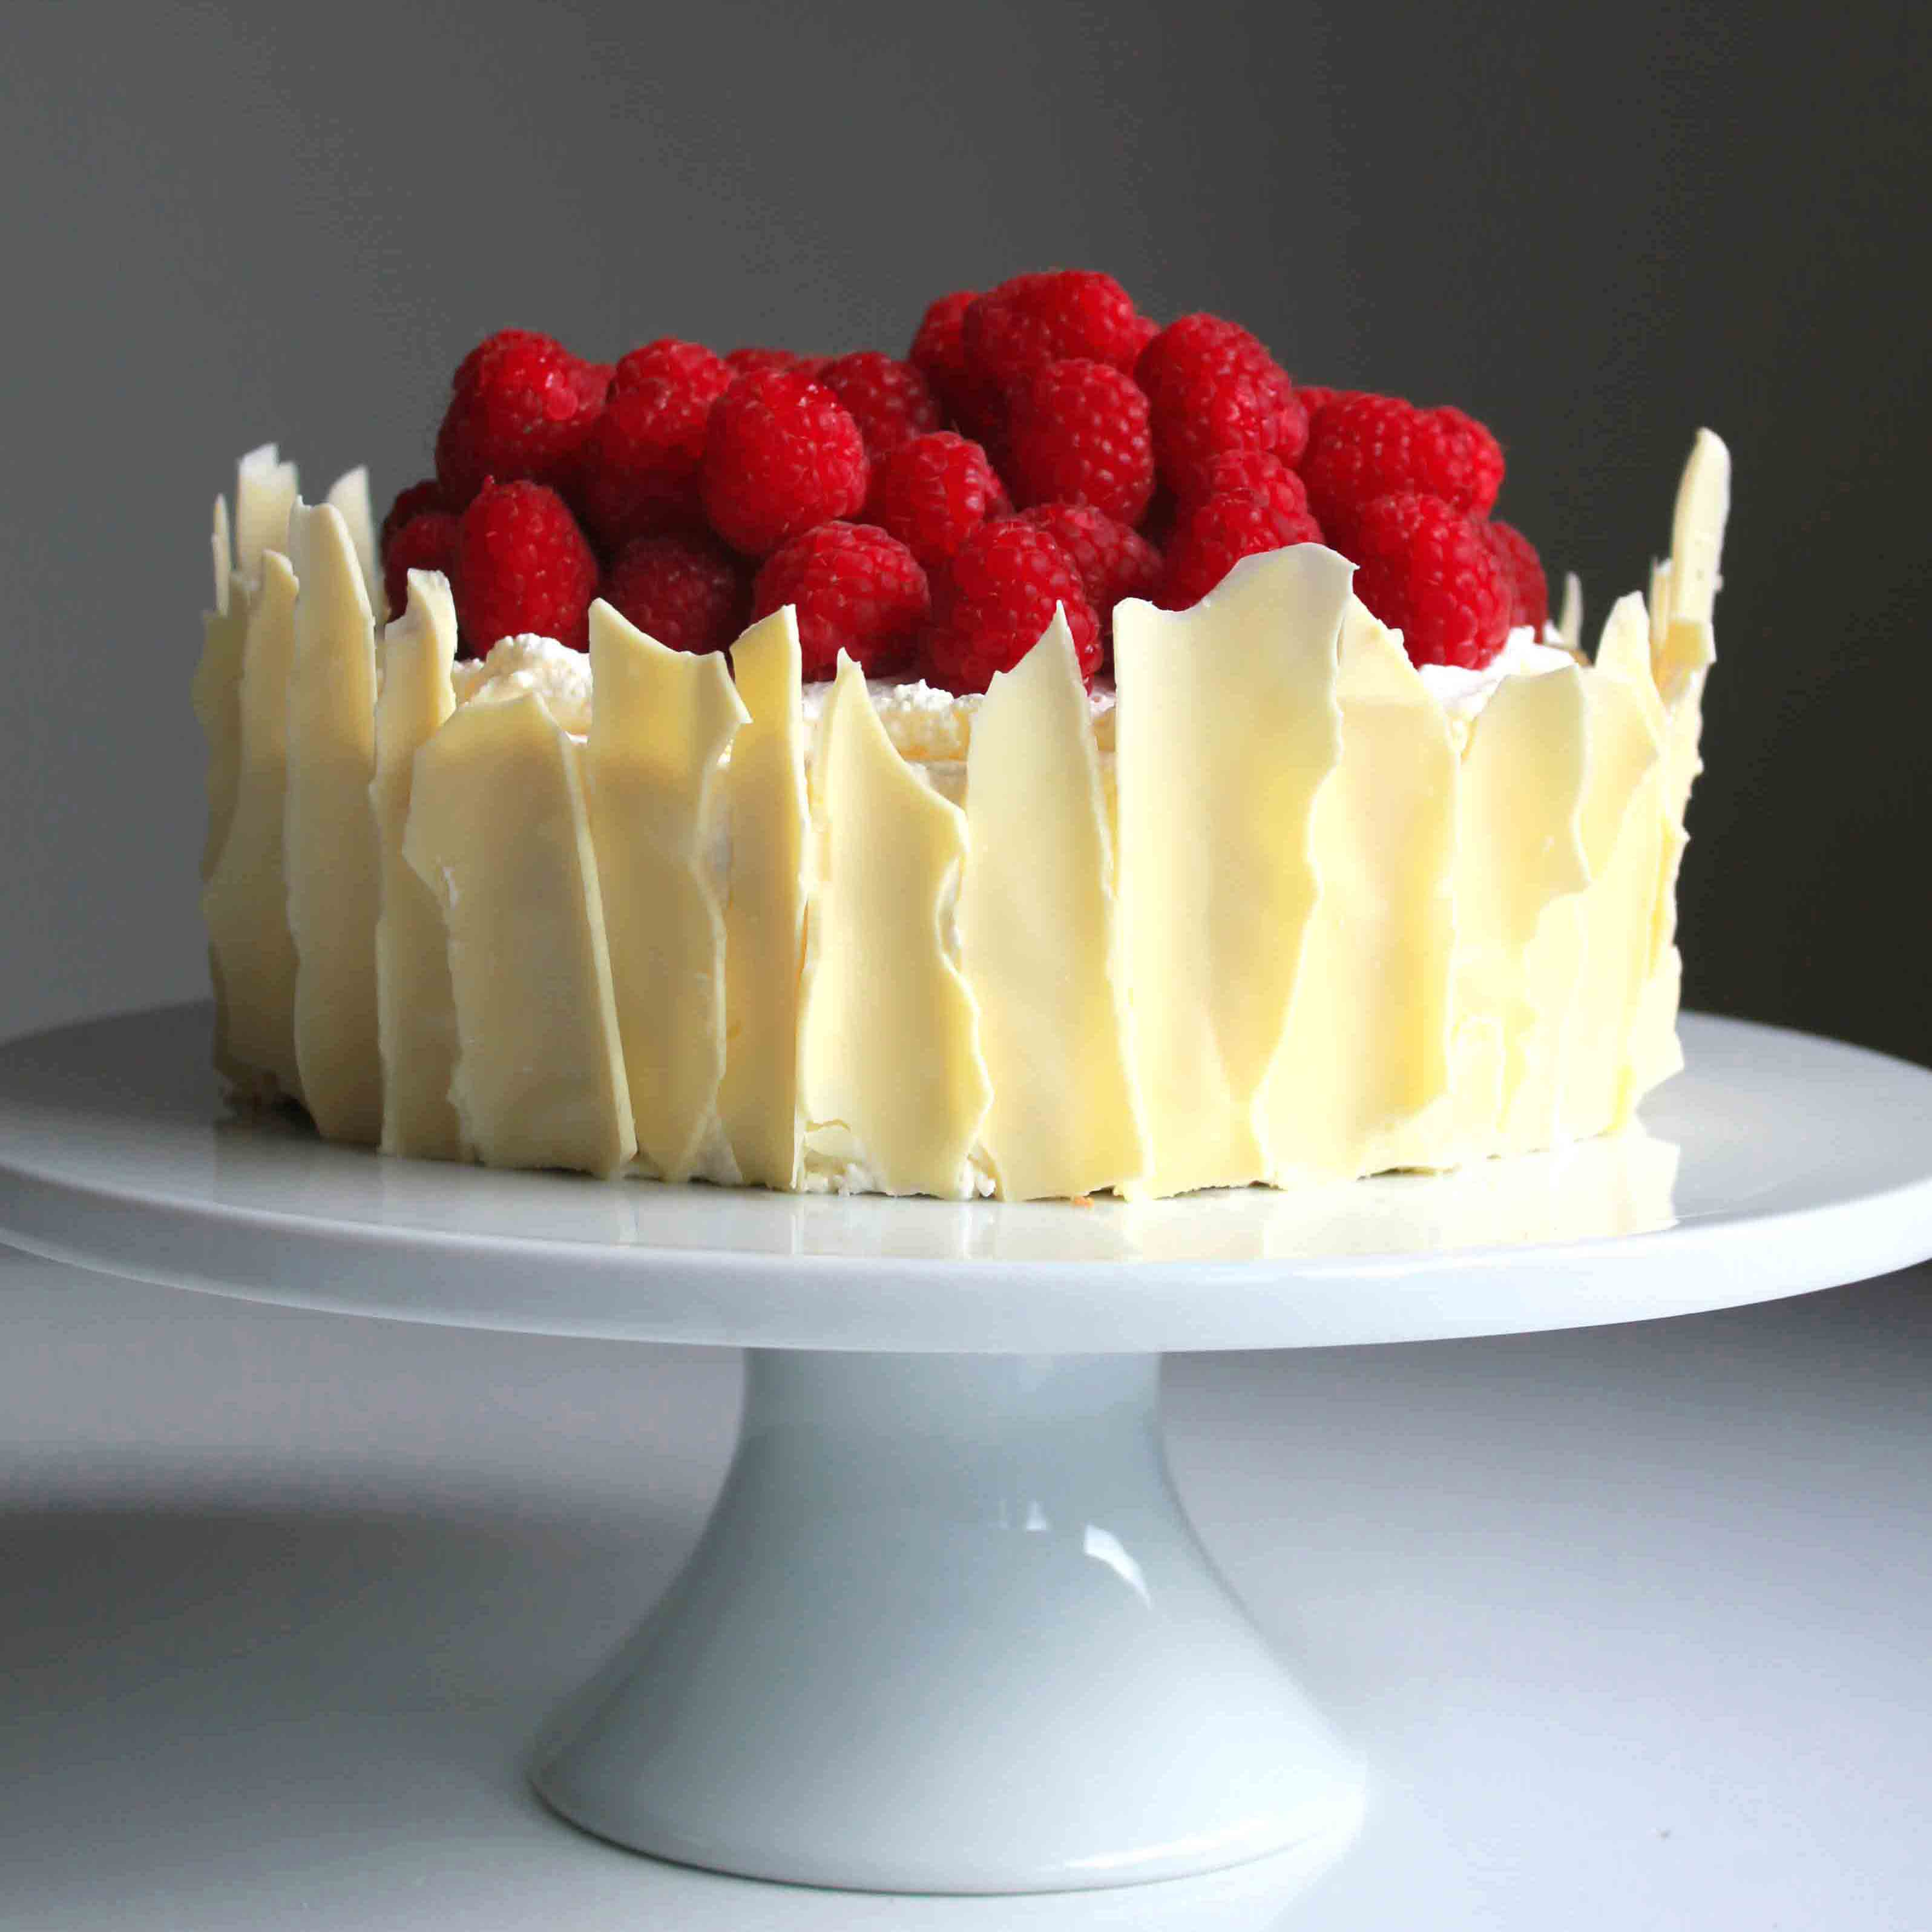 3 Layer Cake Icing: Lemon Raspberry Sponge Cake With White Chocolate Shards